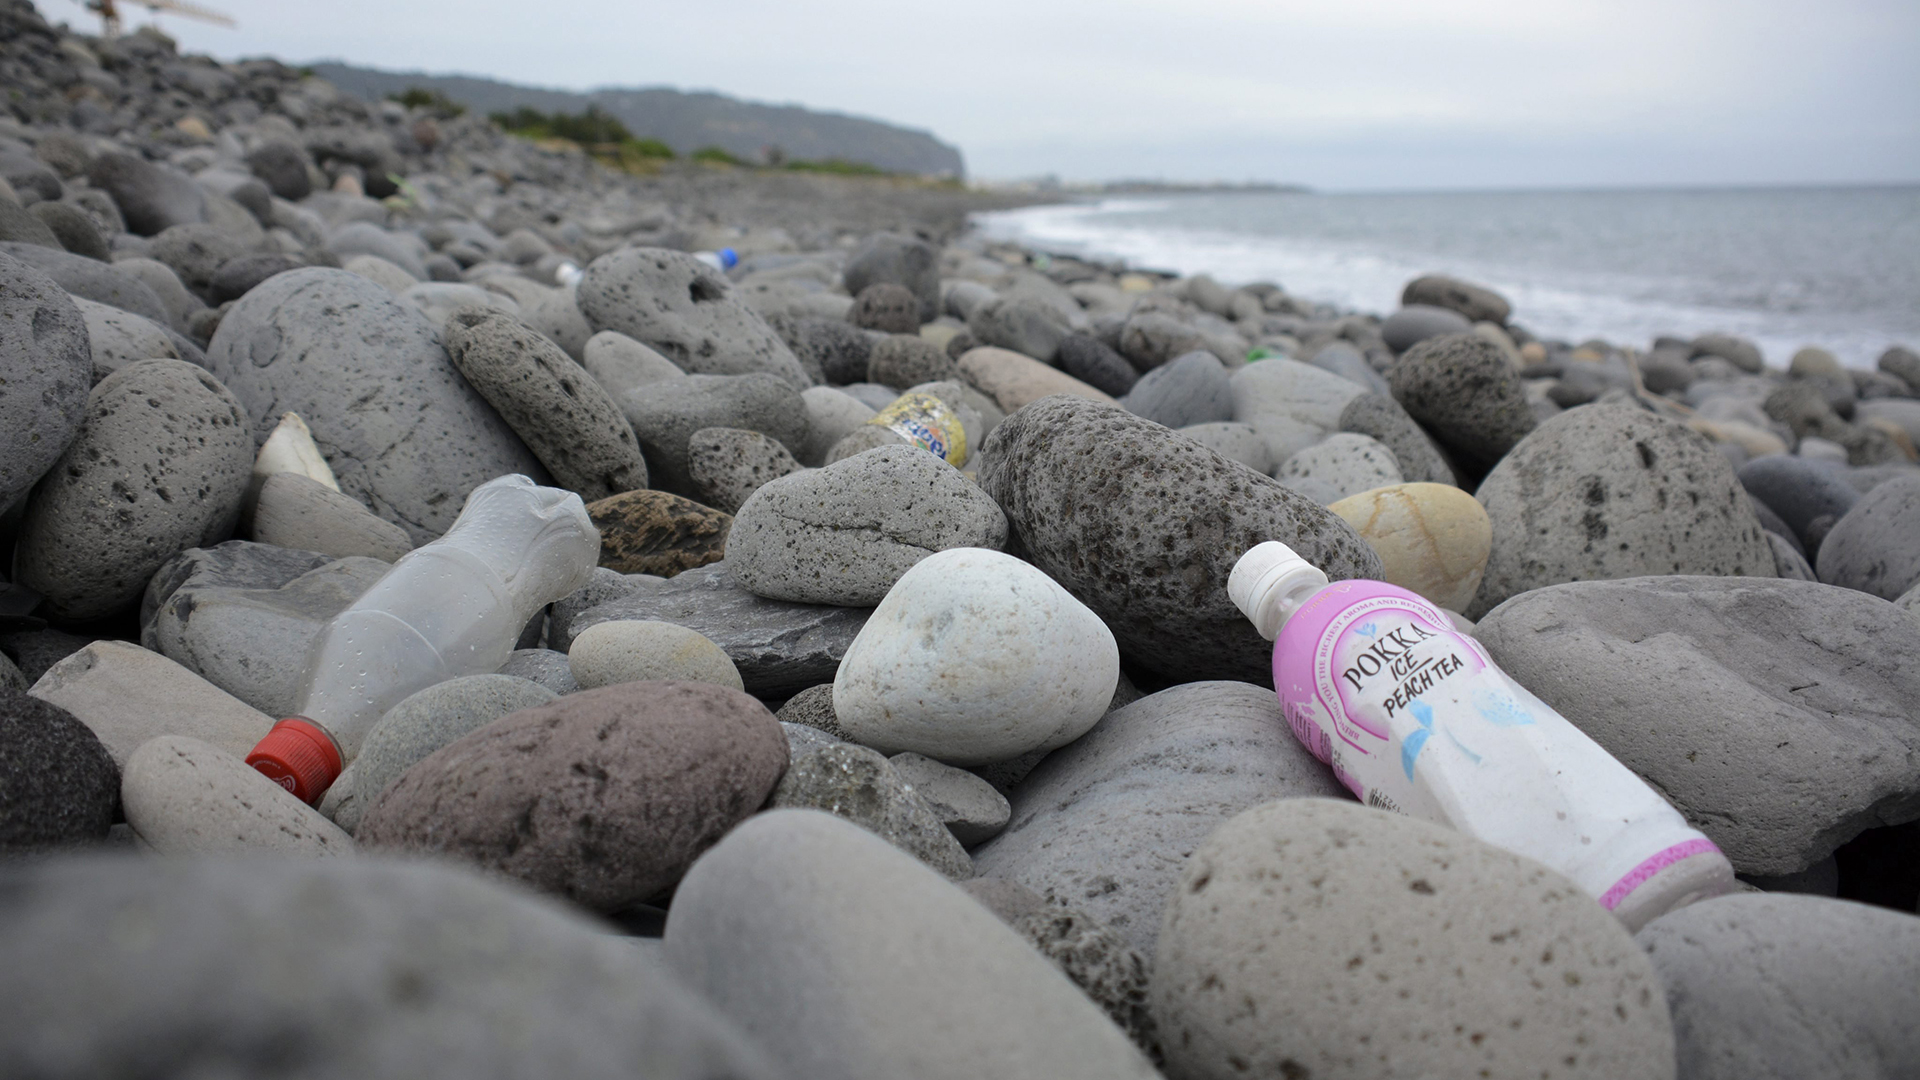 MH370 Search: Storm Could Wash More Debris Onto Reunion Beaches